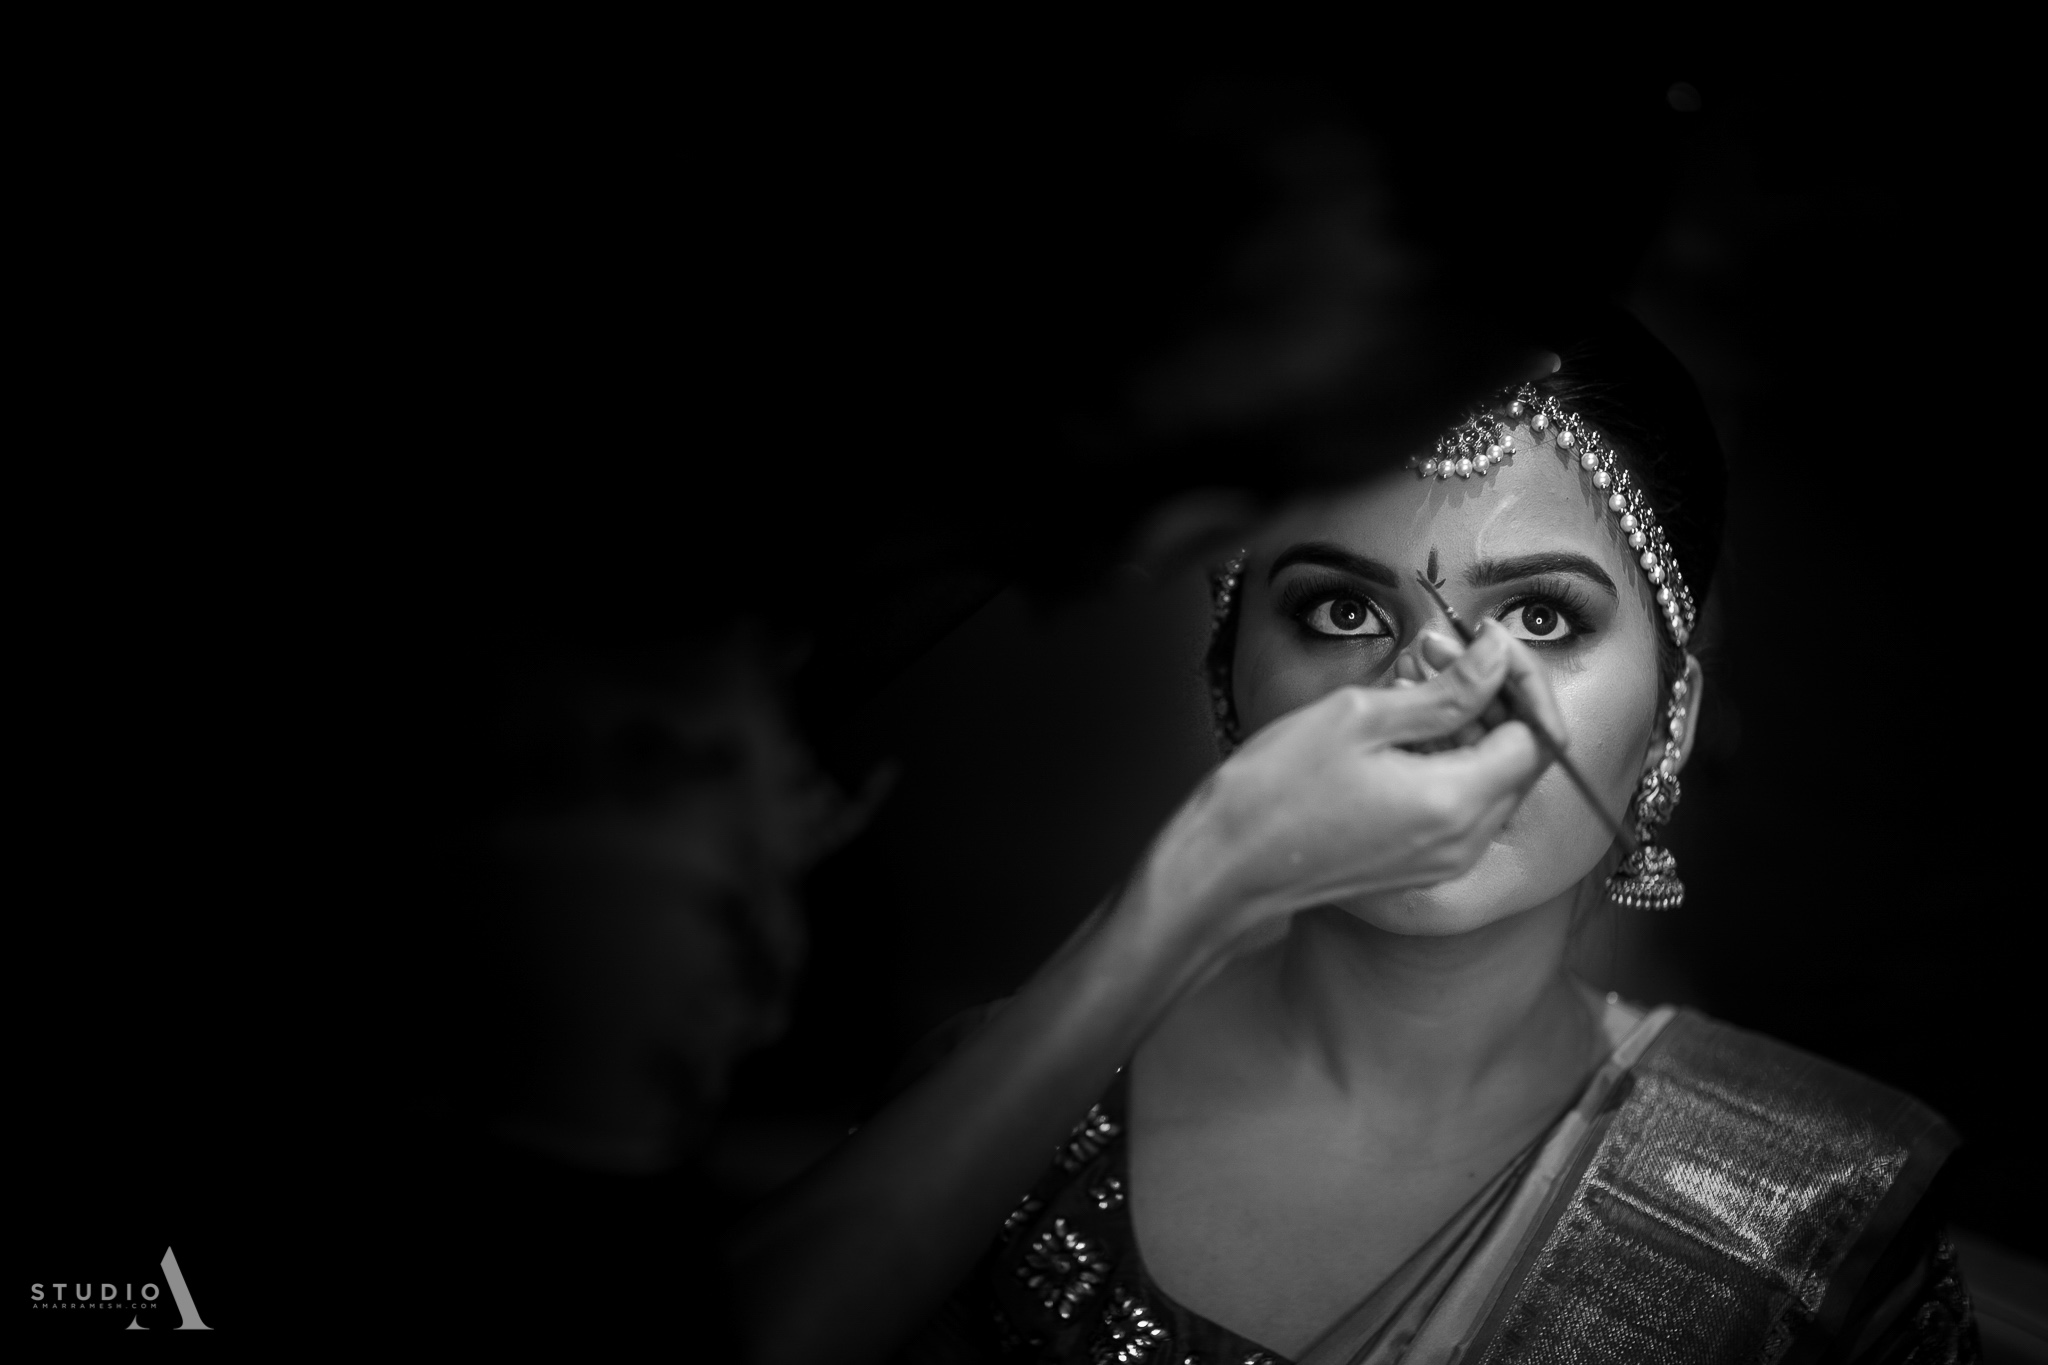 Destination-wedding-photographer-chennai-1